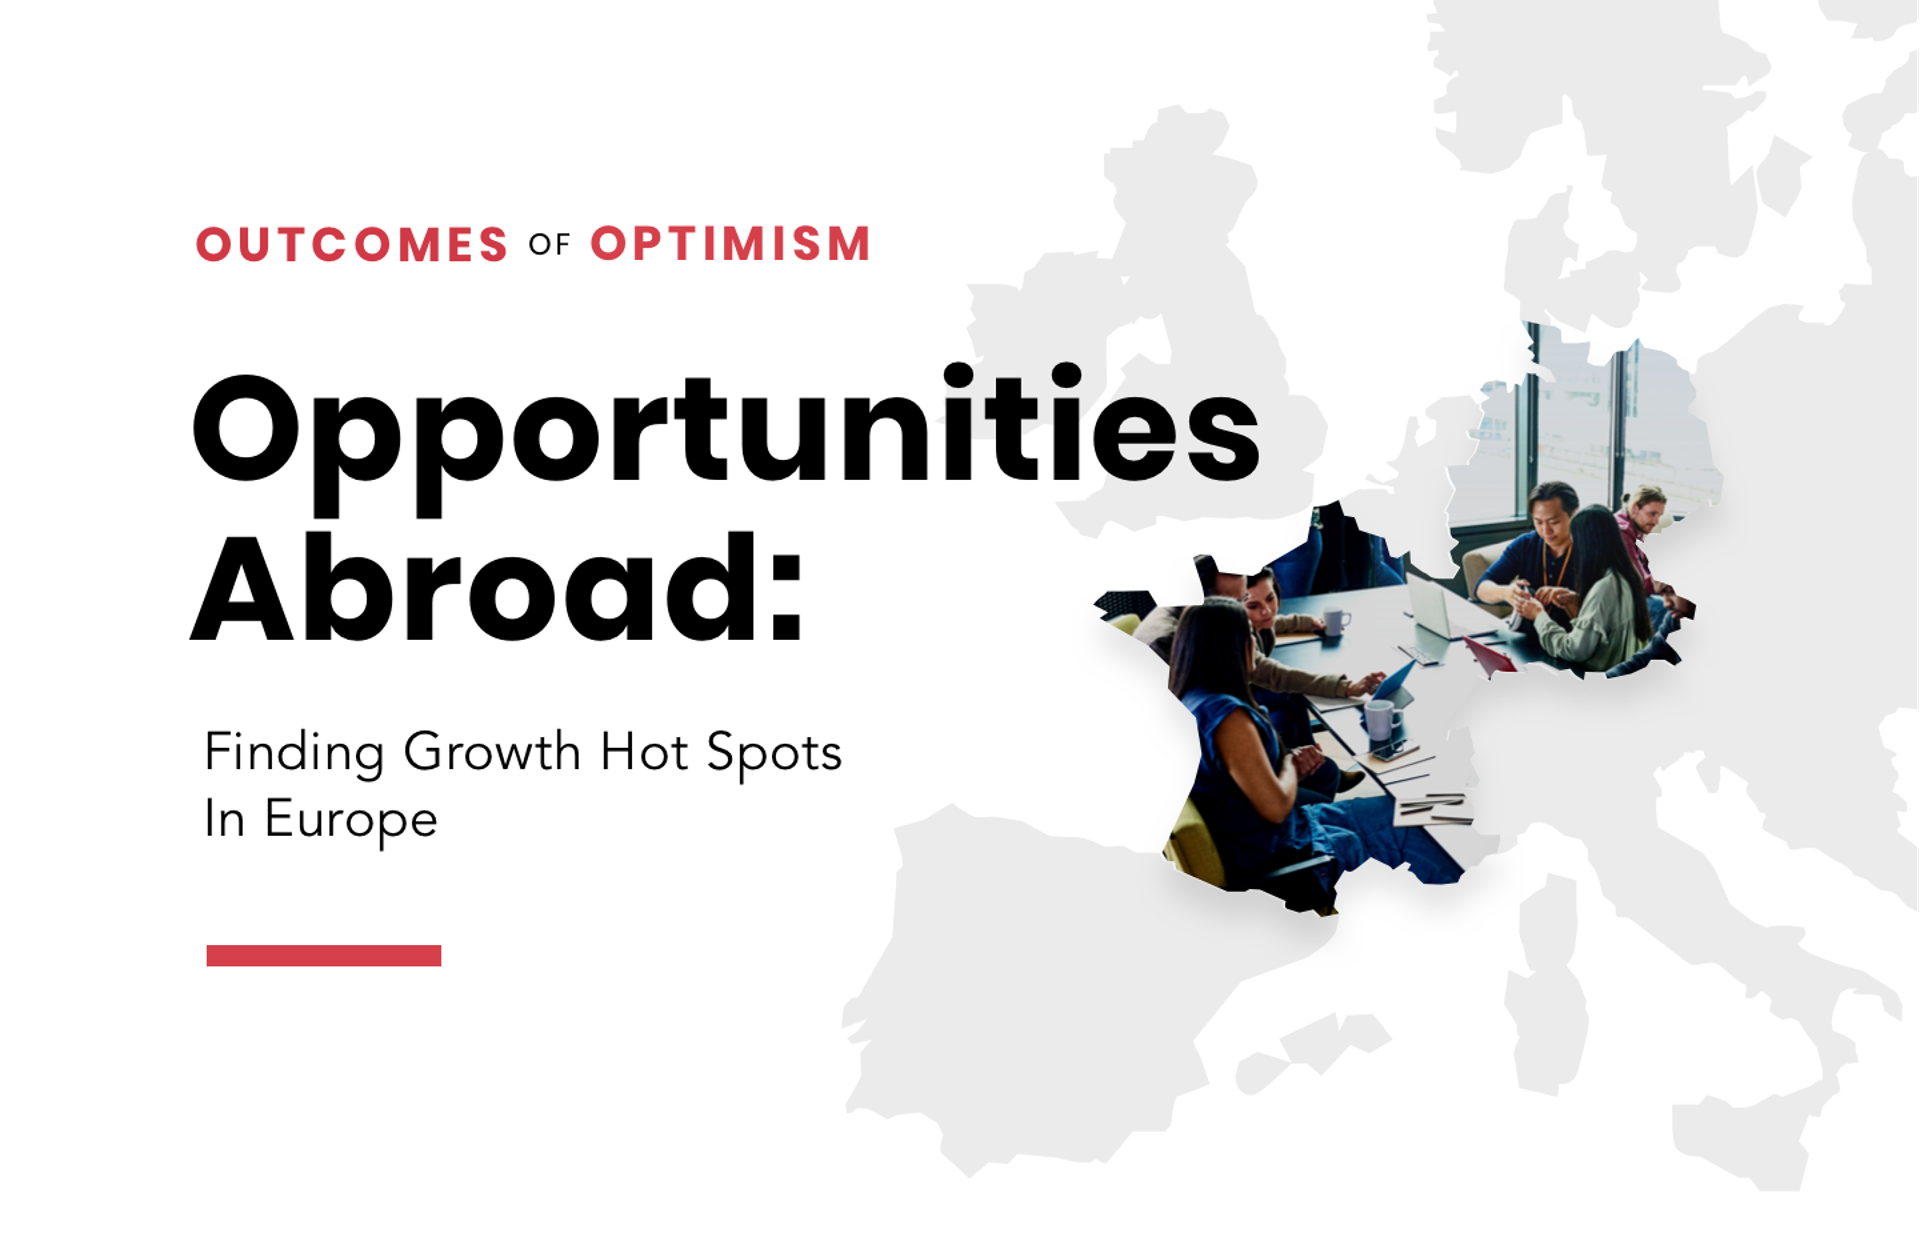 Outcomes of Optimism: Opportunities Abroad